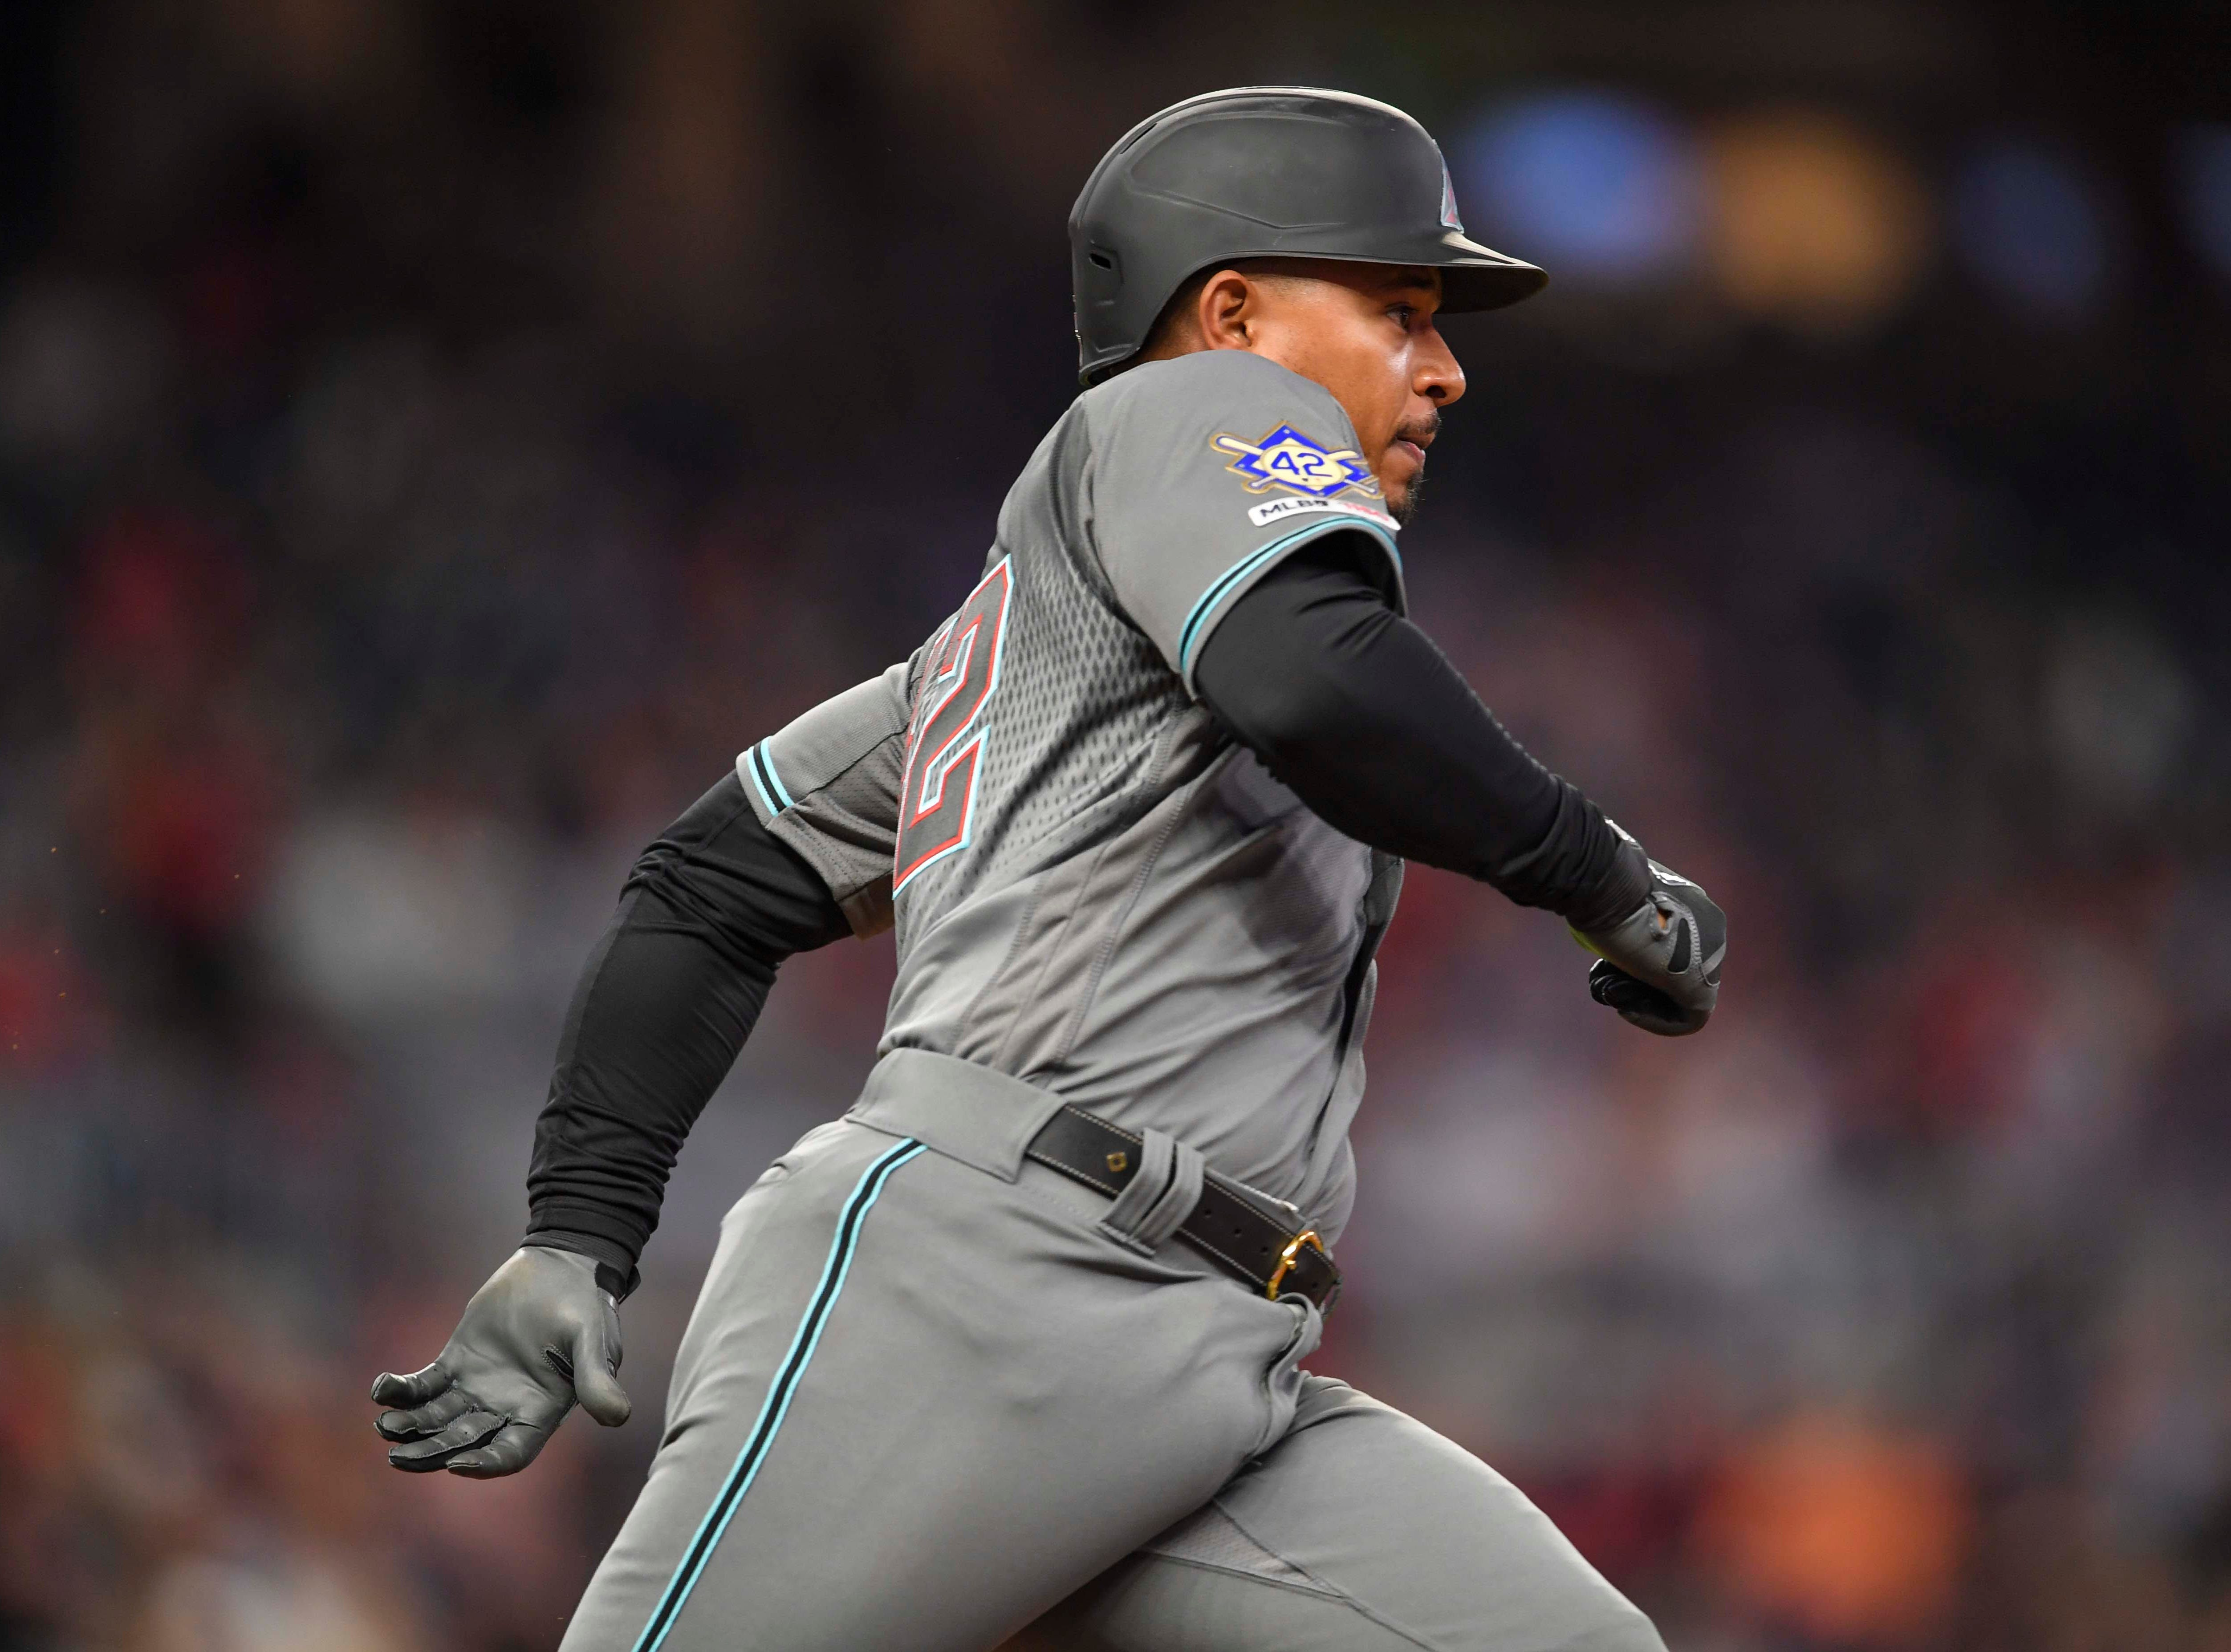 Apr 16, 2019; Atlanta, GA, USA; Arizona Diamondbacks third baseman Eduardo Escobar (5) runs after singling to score two runs against the Atlanta Braves during the seventh inning at SunTrust Park. Mandatory Credit: Dale Zanine-USA TODAY Sports